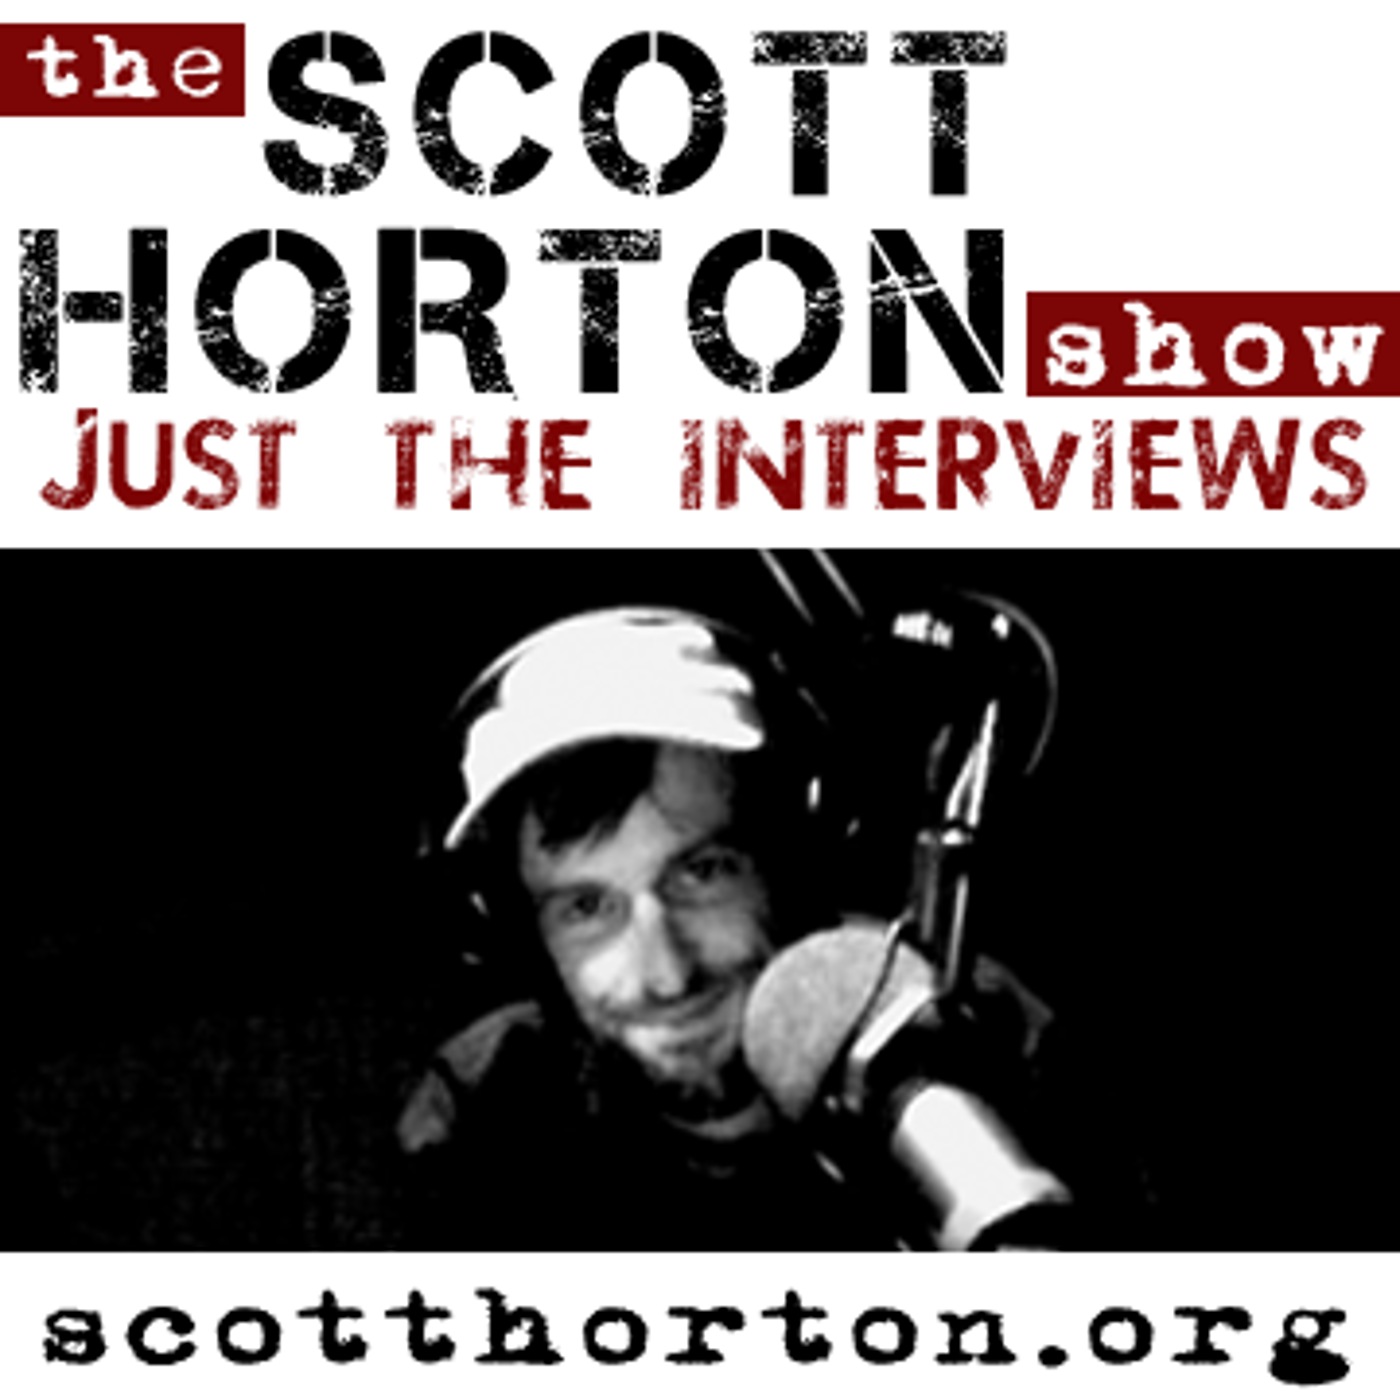 Scott Horton Show Interviews